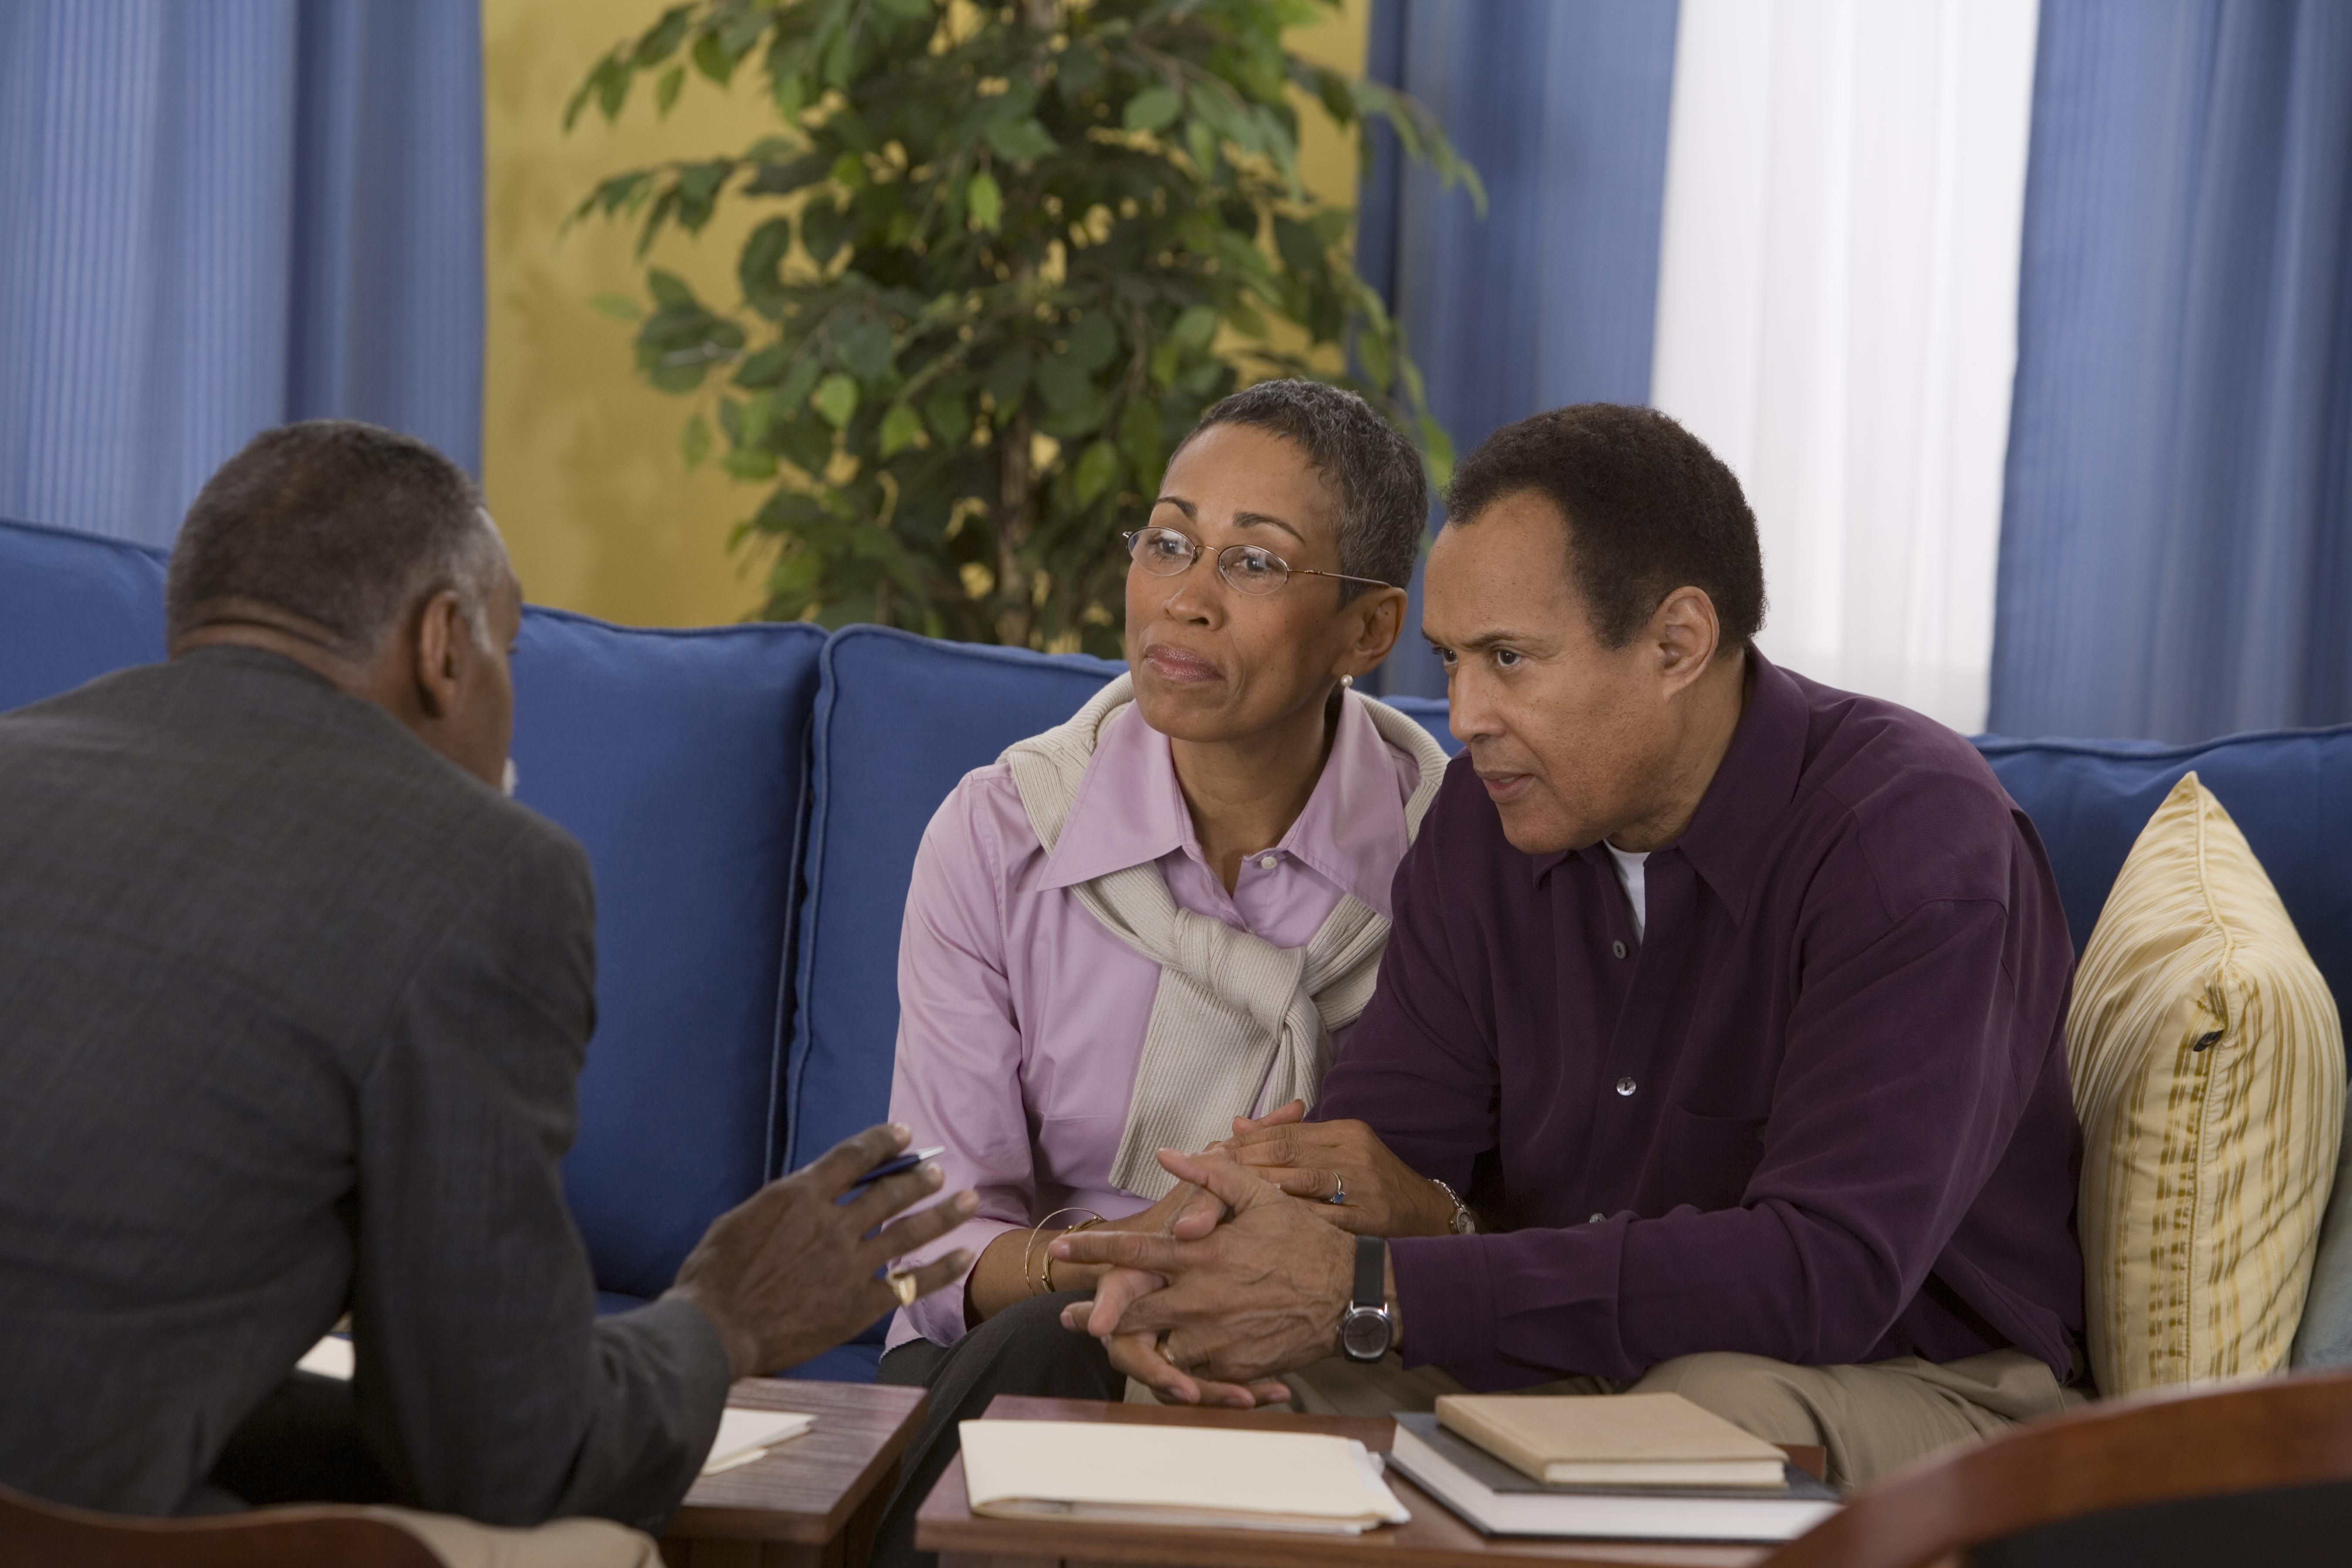 How To Know If You Need Marriage Counseling